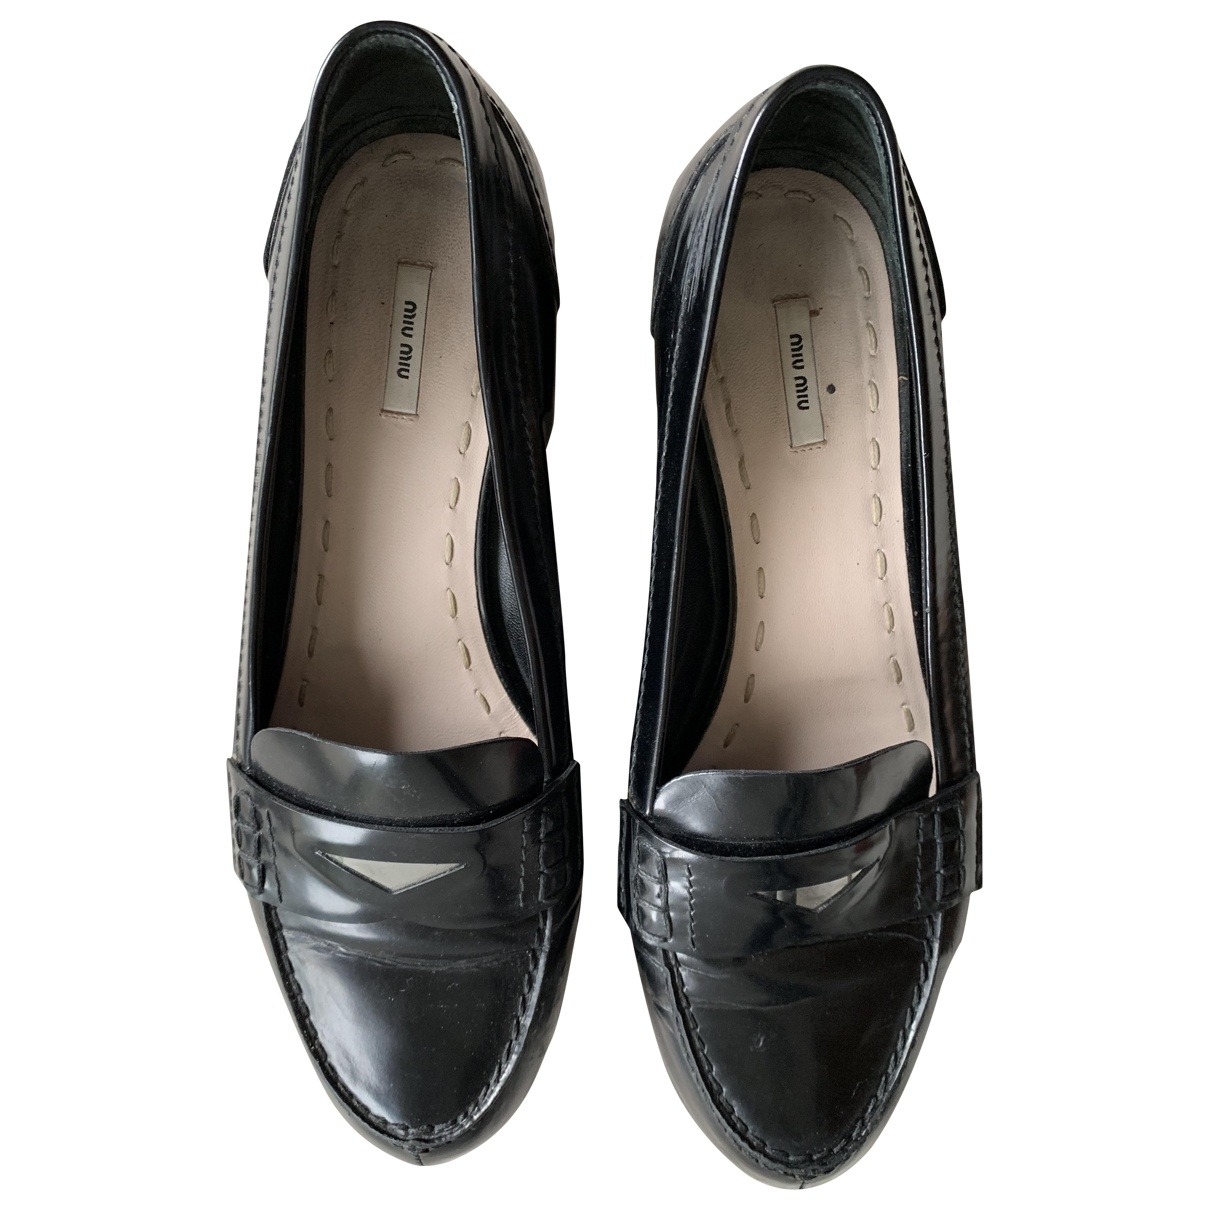 Miu Miu \N Black Leather Flats for Women 37.5 EU